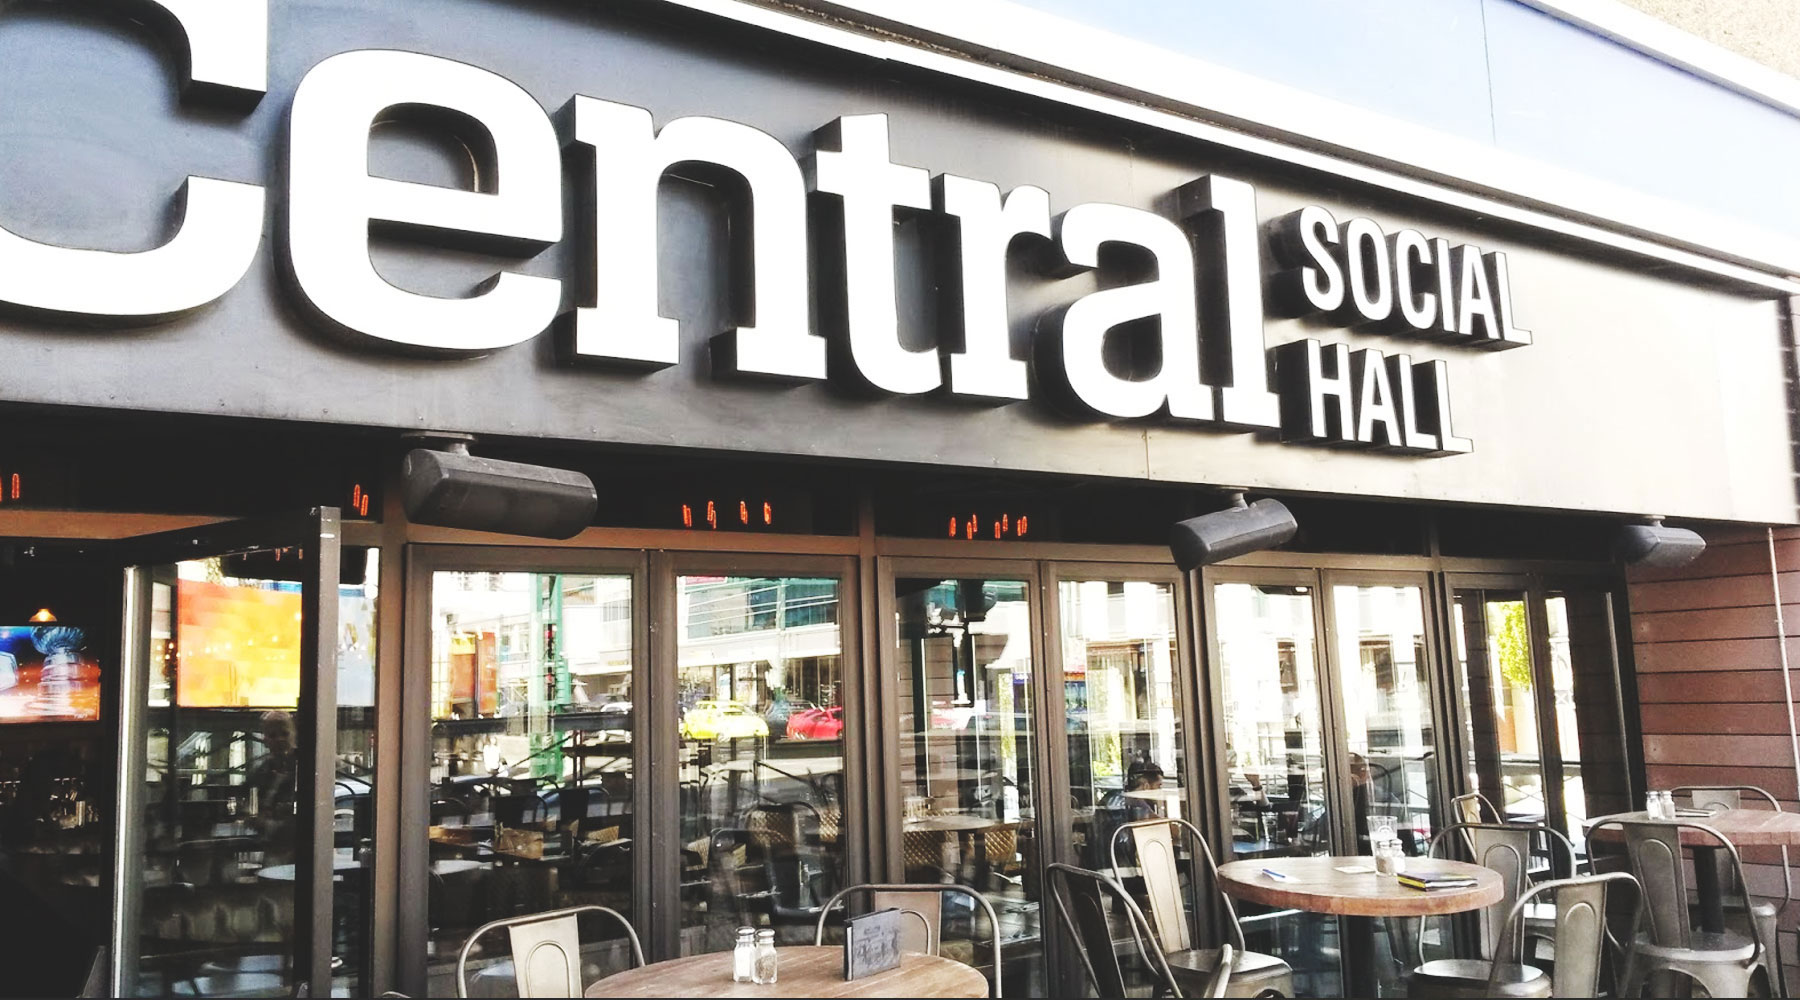 Central Social Hall | Just Wine